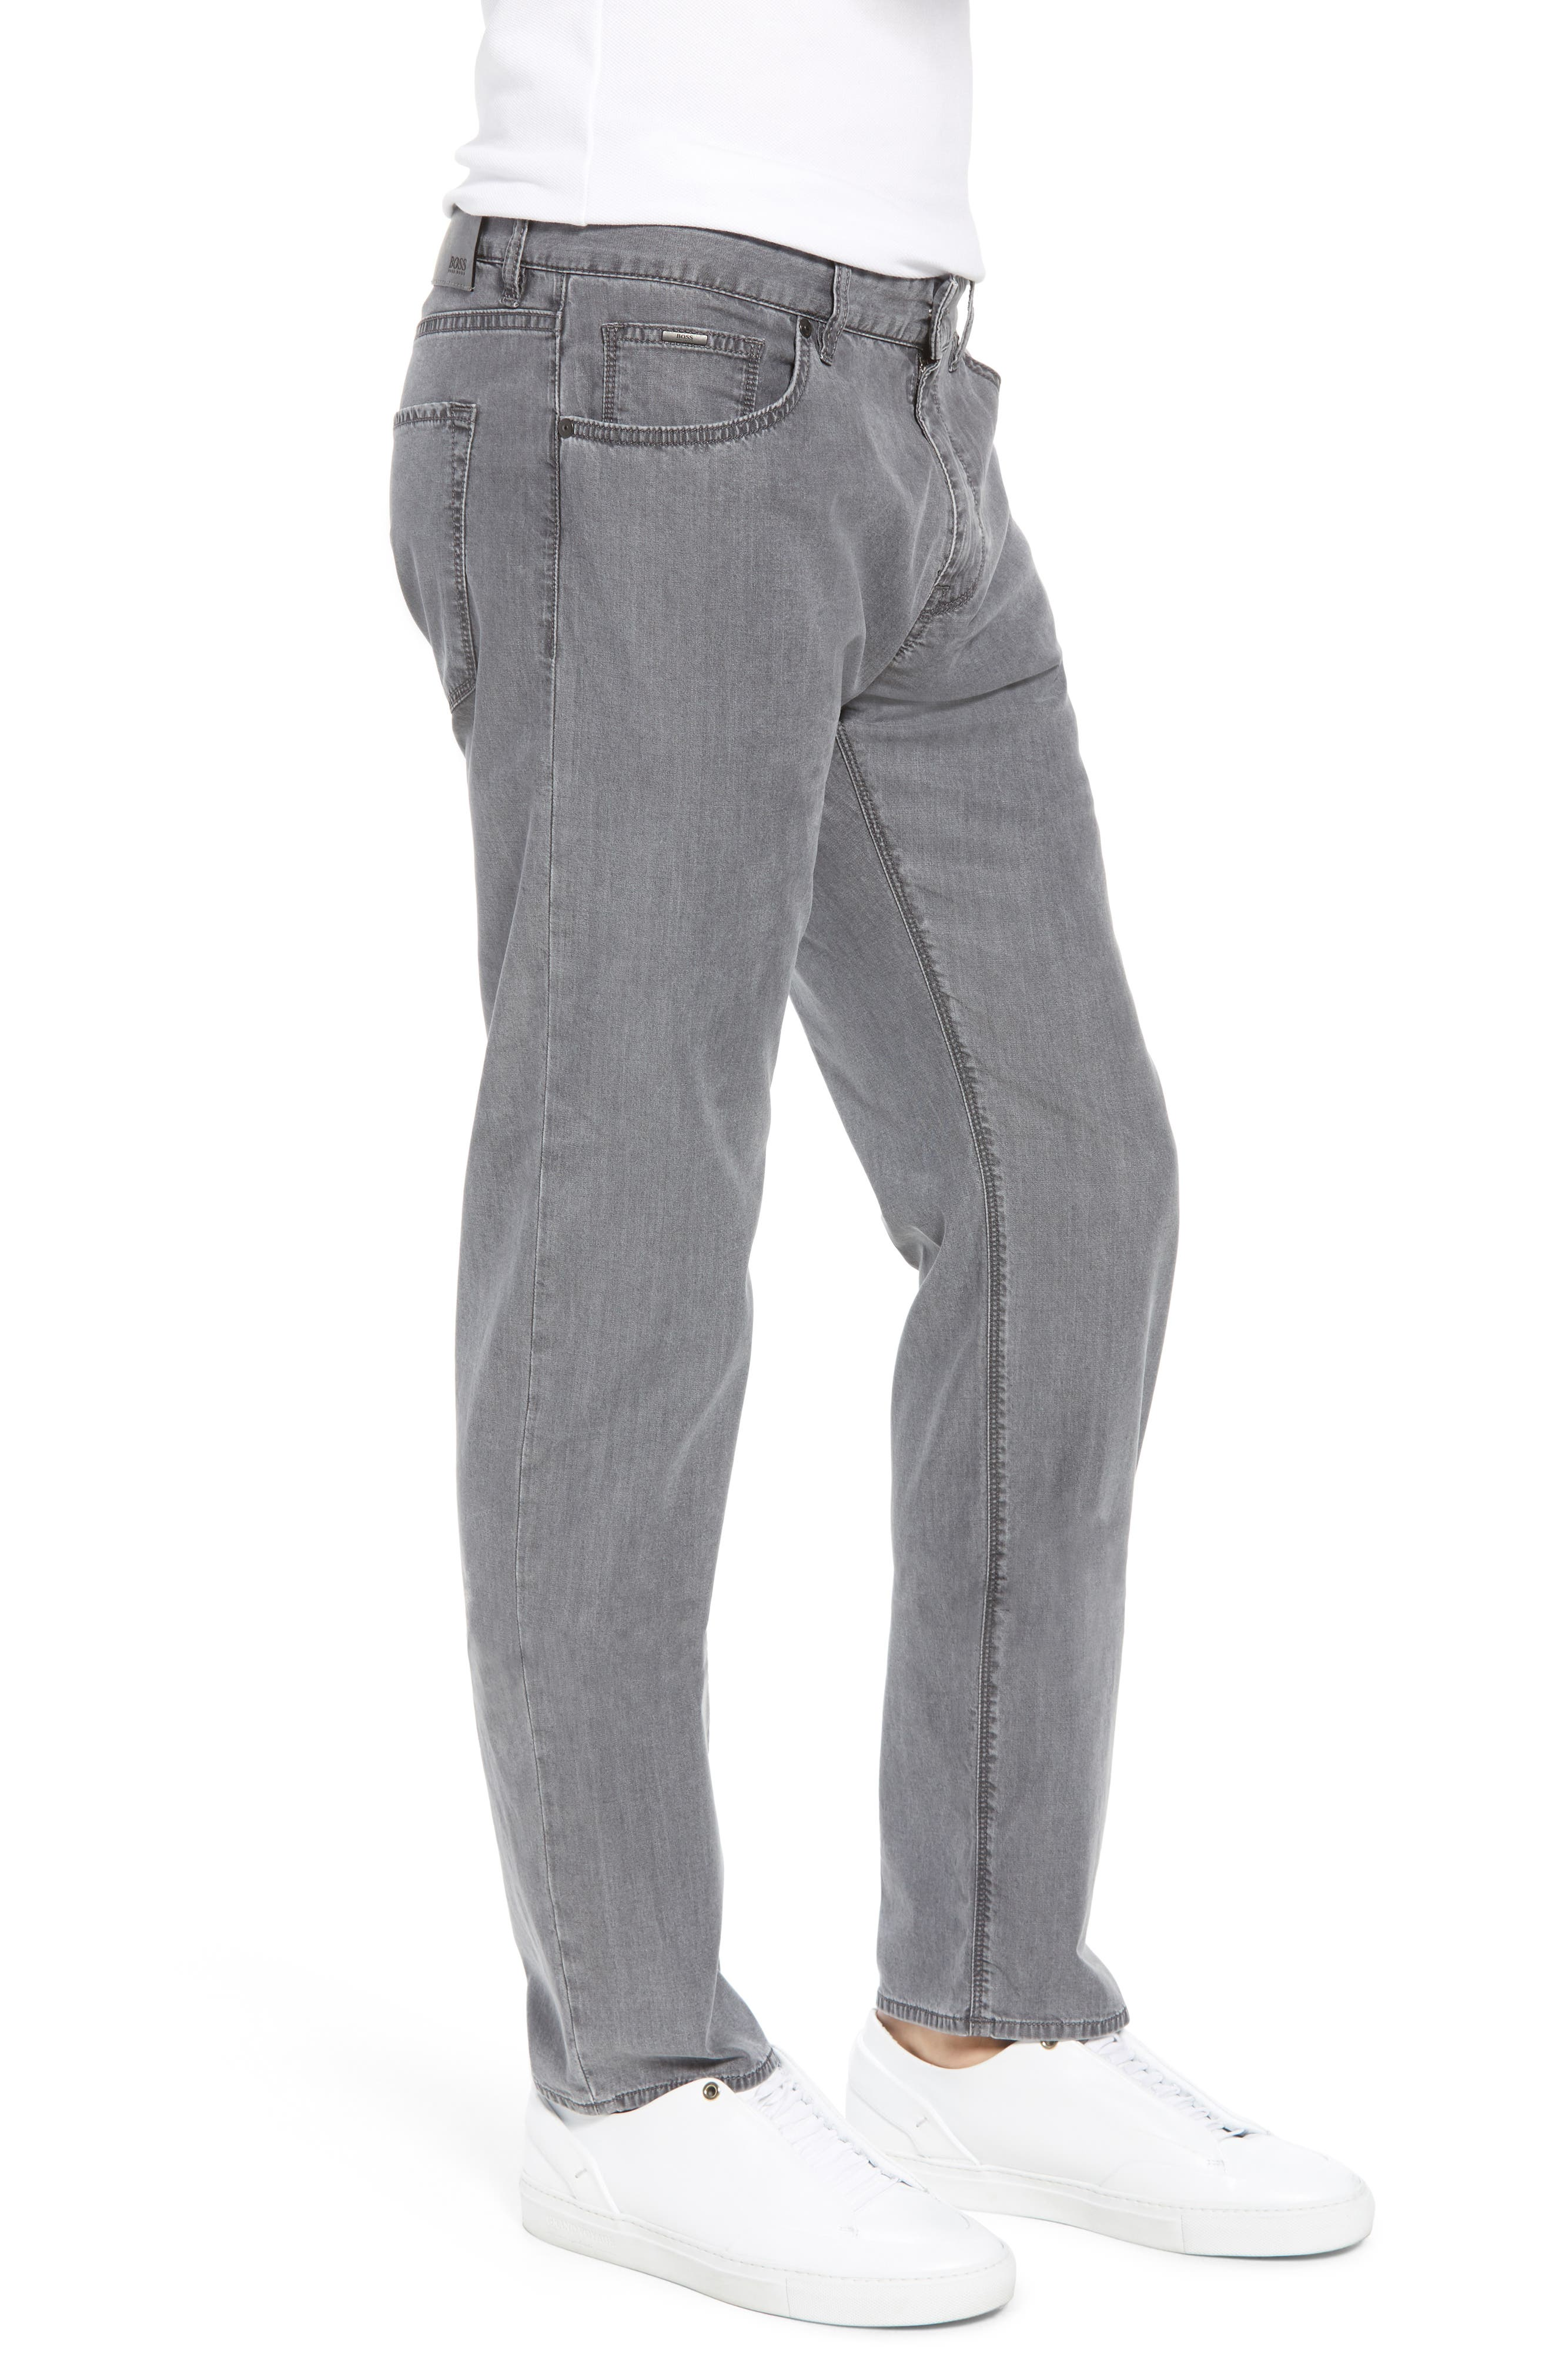 Maine Classic Fit Jeans,                             Alternate thumbnail 3, color,                             GREY